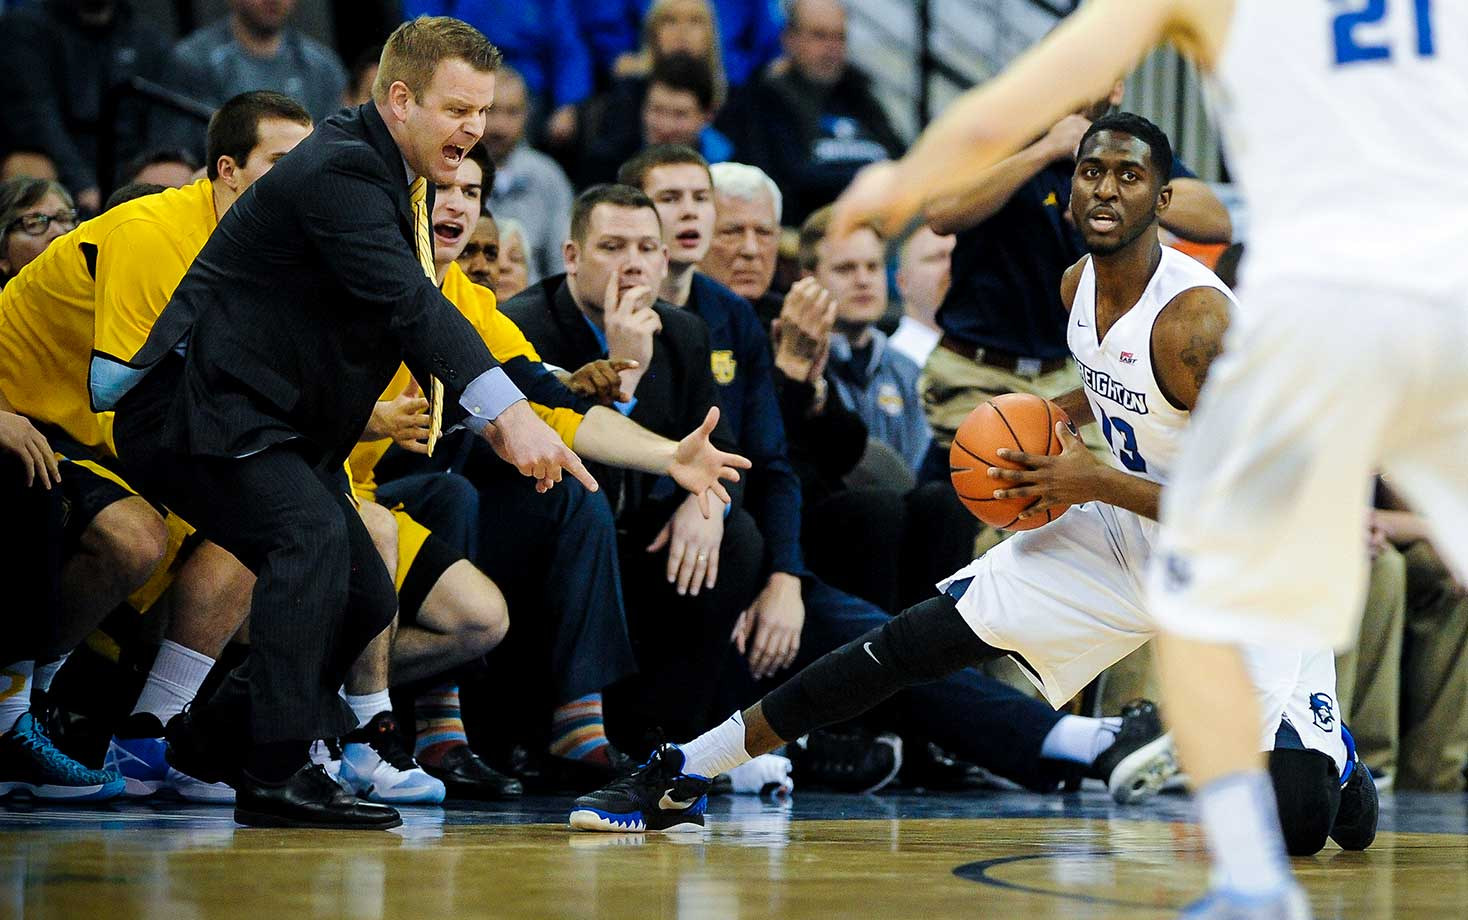 Coach Steve Wojciechowski and Marquette players reacts to a play against the Creighton Bluejays.